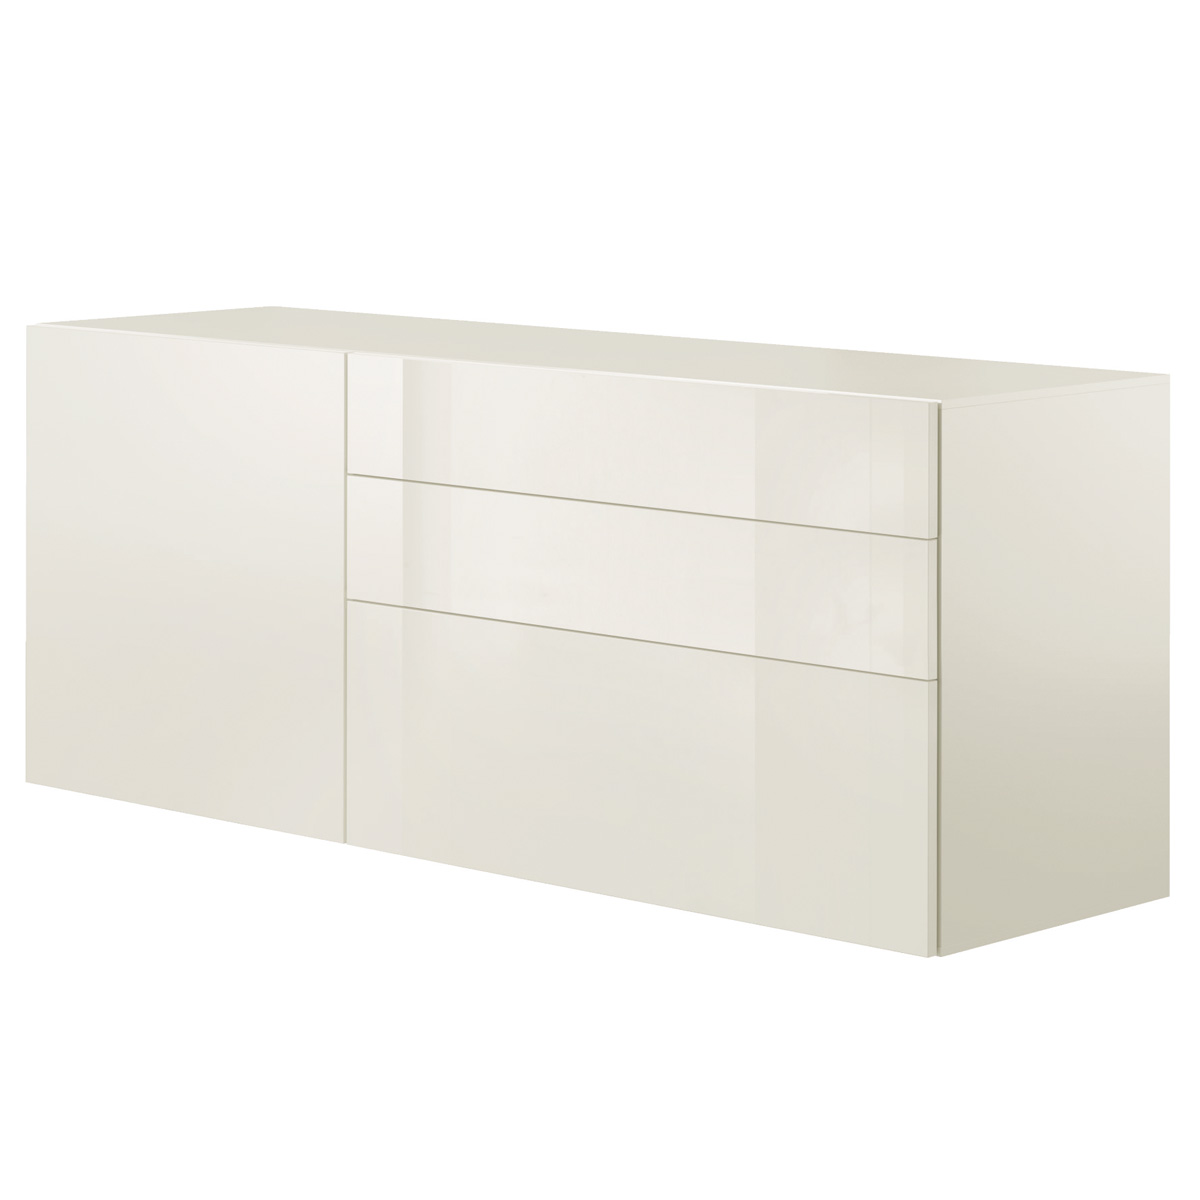 Schubladen Sideboard Sideboard Schubladen Great Sideboard With Sideboard